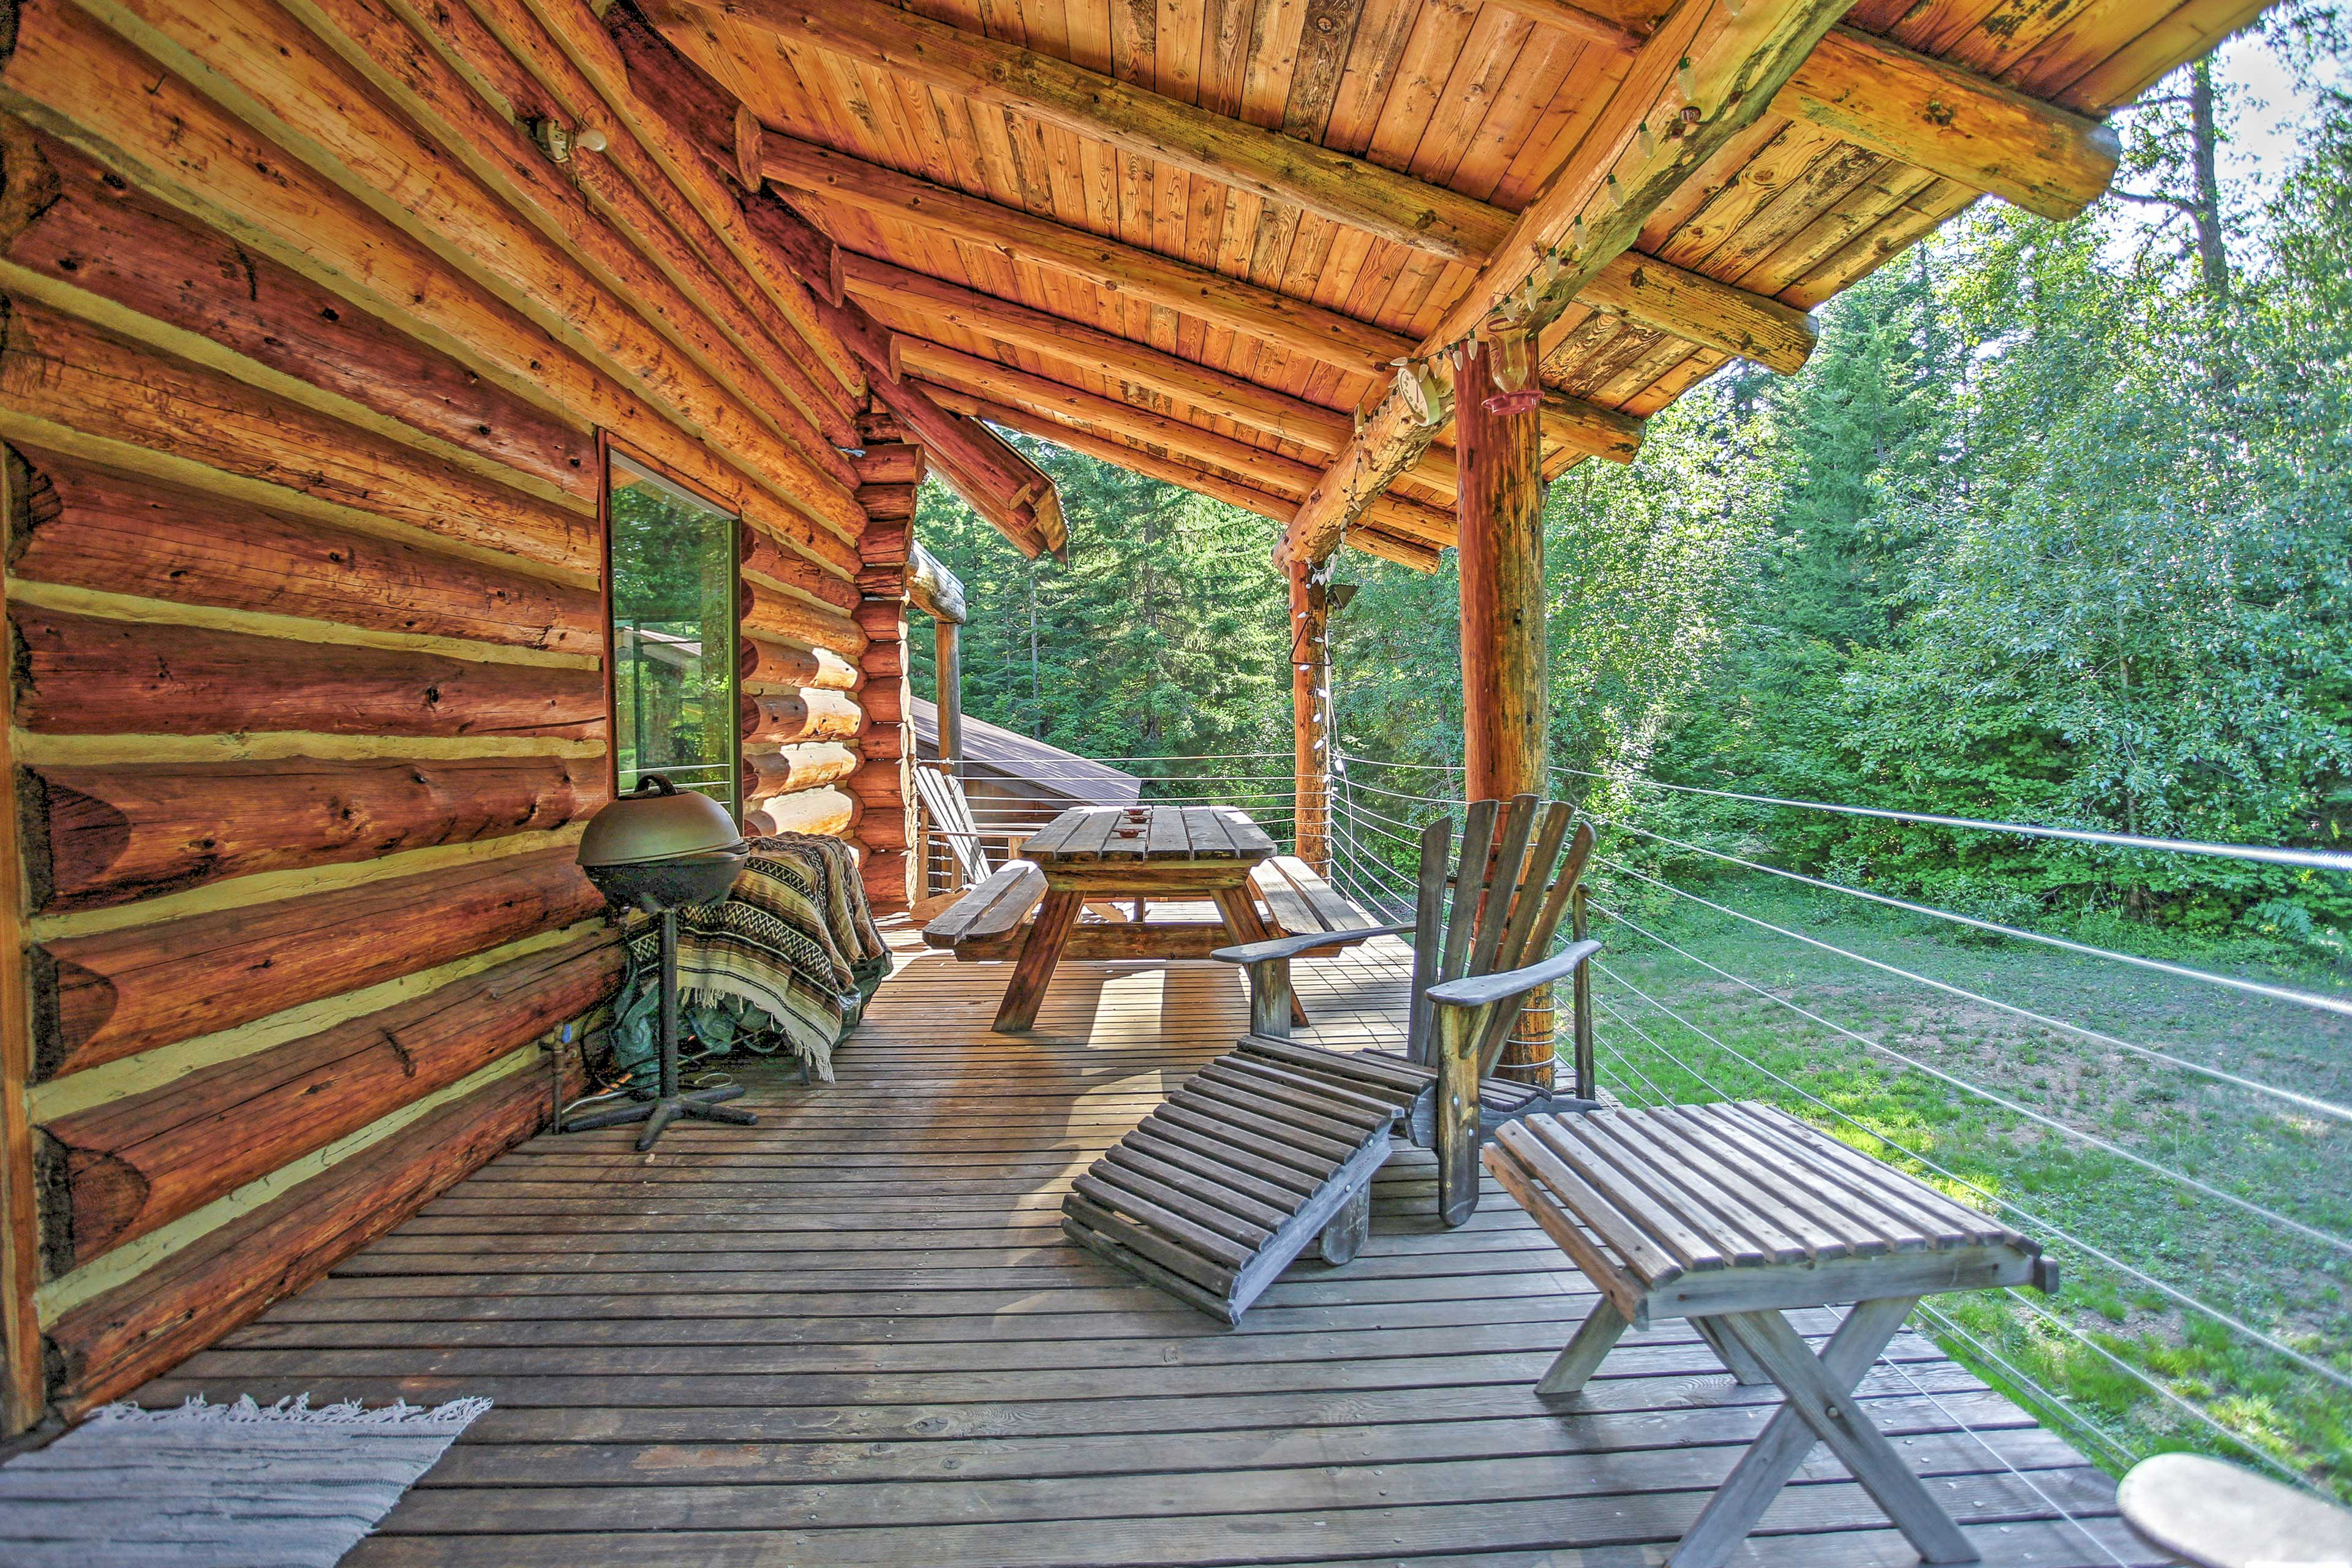 Head out to the private furnished deck to admire the forest views!